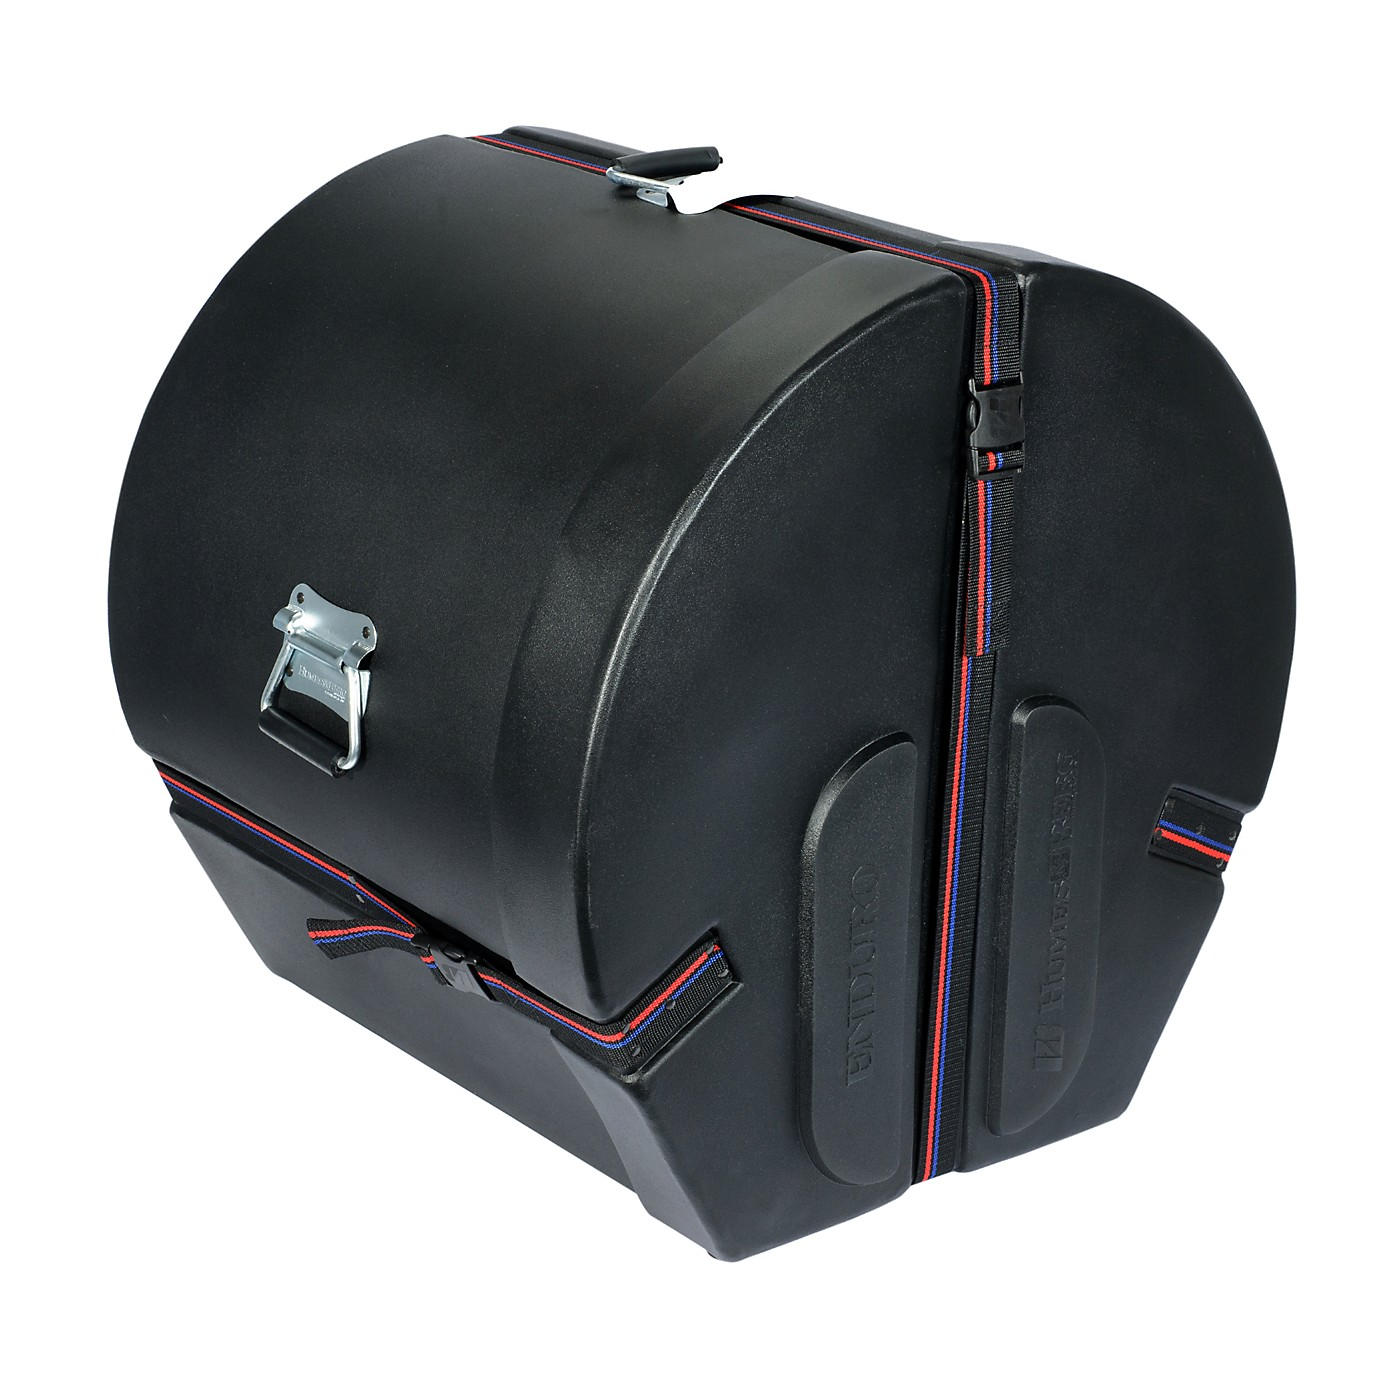 Humes & Berg Enduro Bass Drum Case with Foam thumbnail